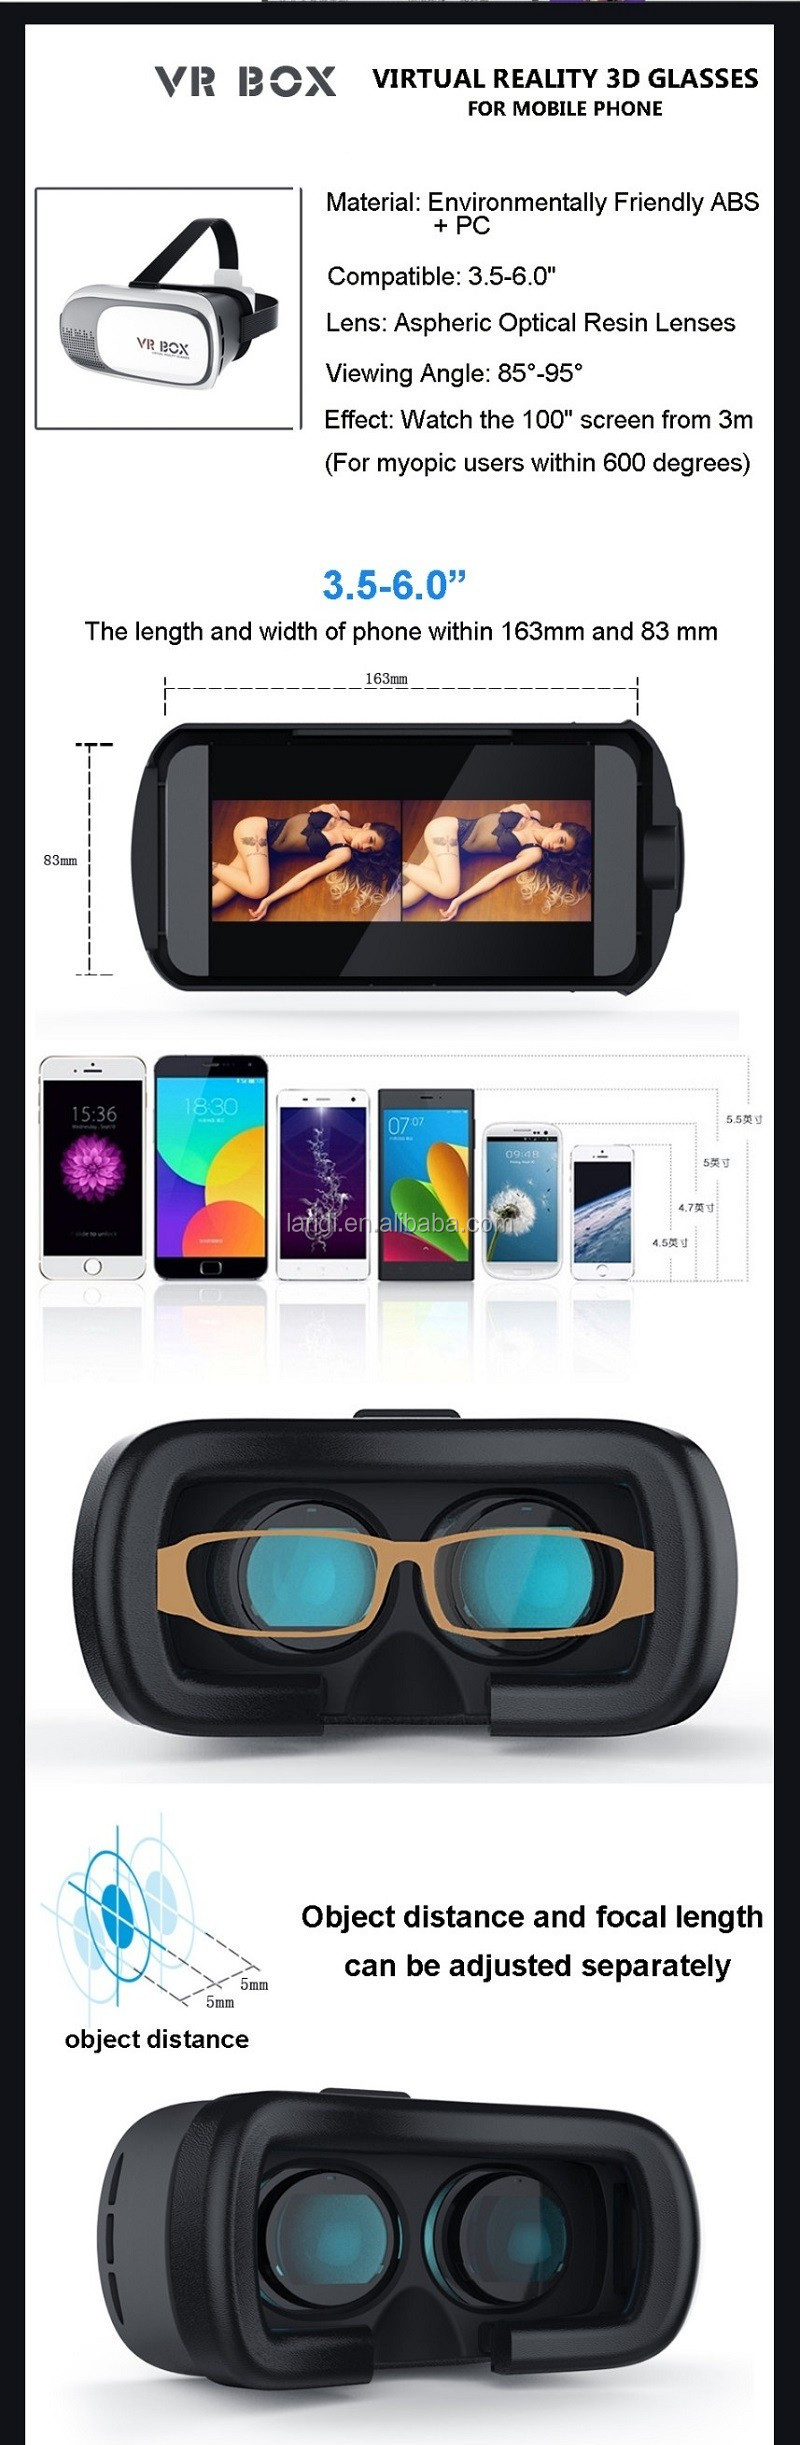 Hot selling google cardboard vr box 2.0 headset to watch 3D sex movie with smart phone